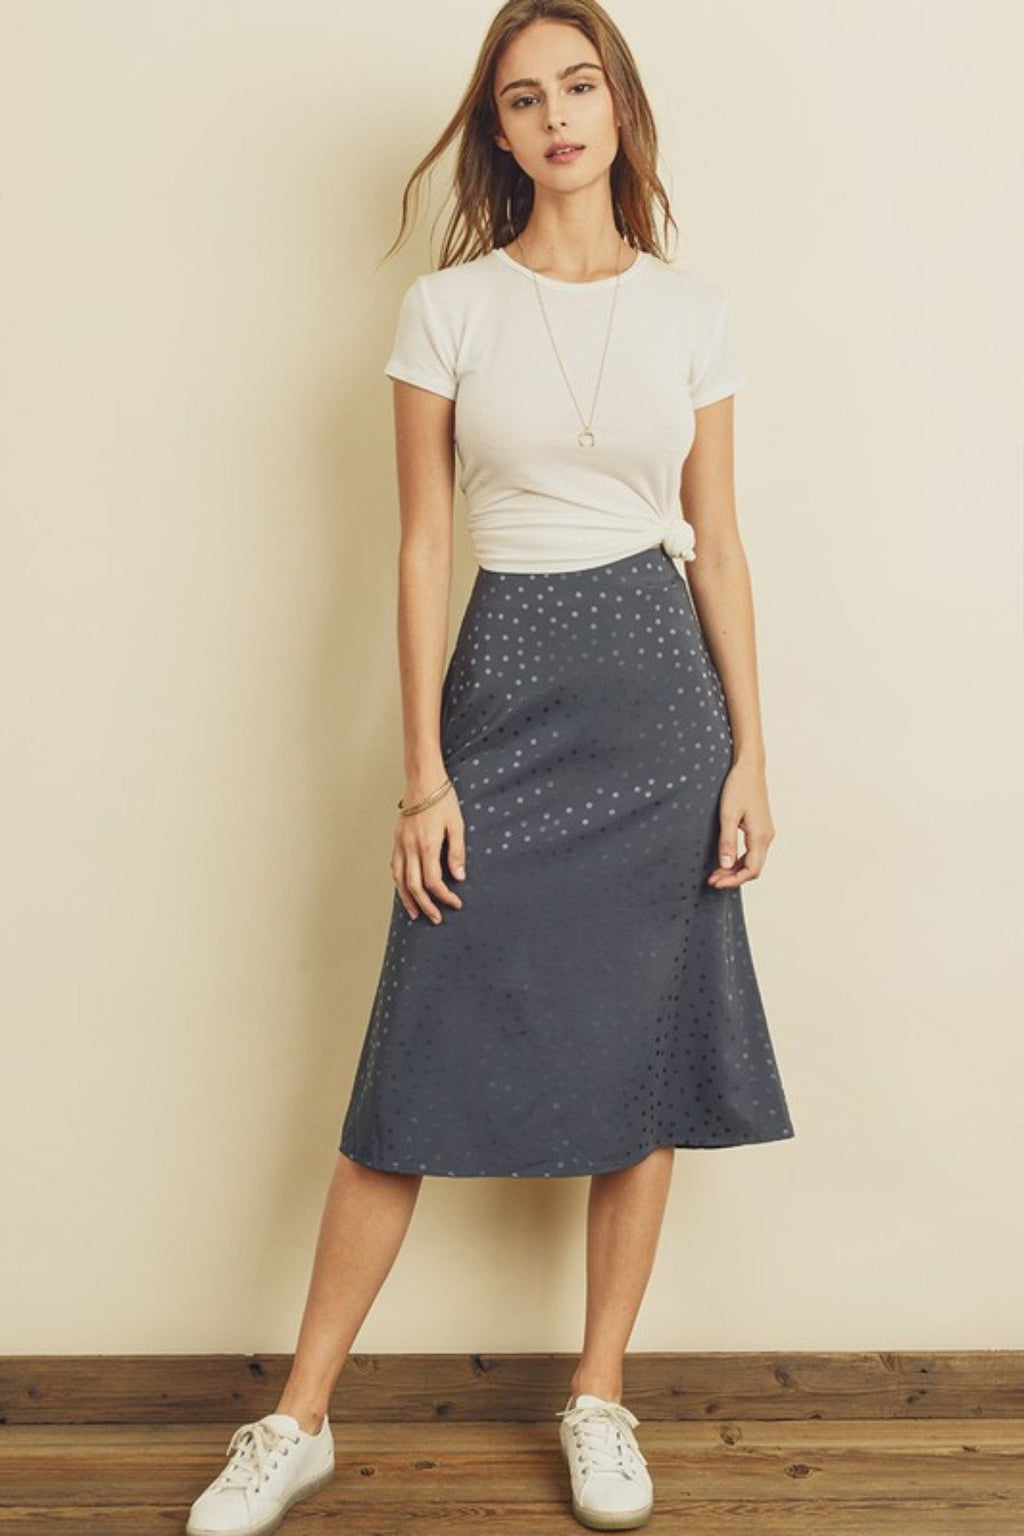 OFFICE DAY MUTED DOT MIDI SKIRT - [jayden_p]